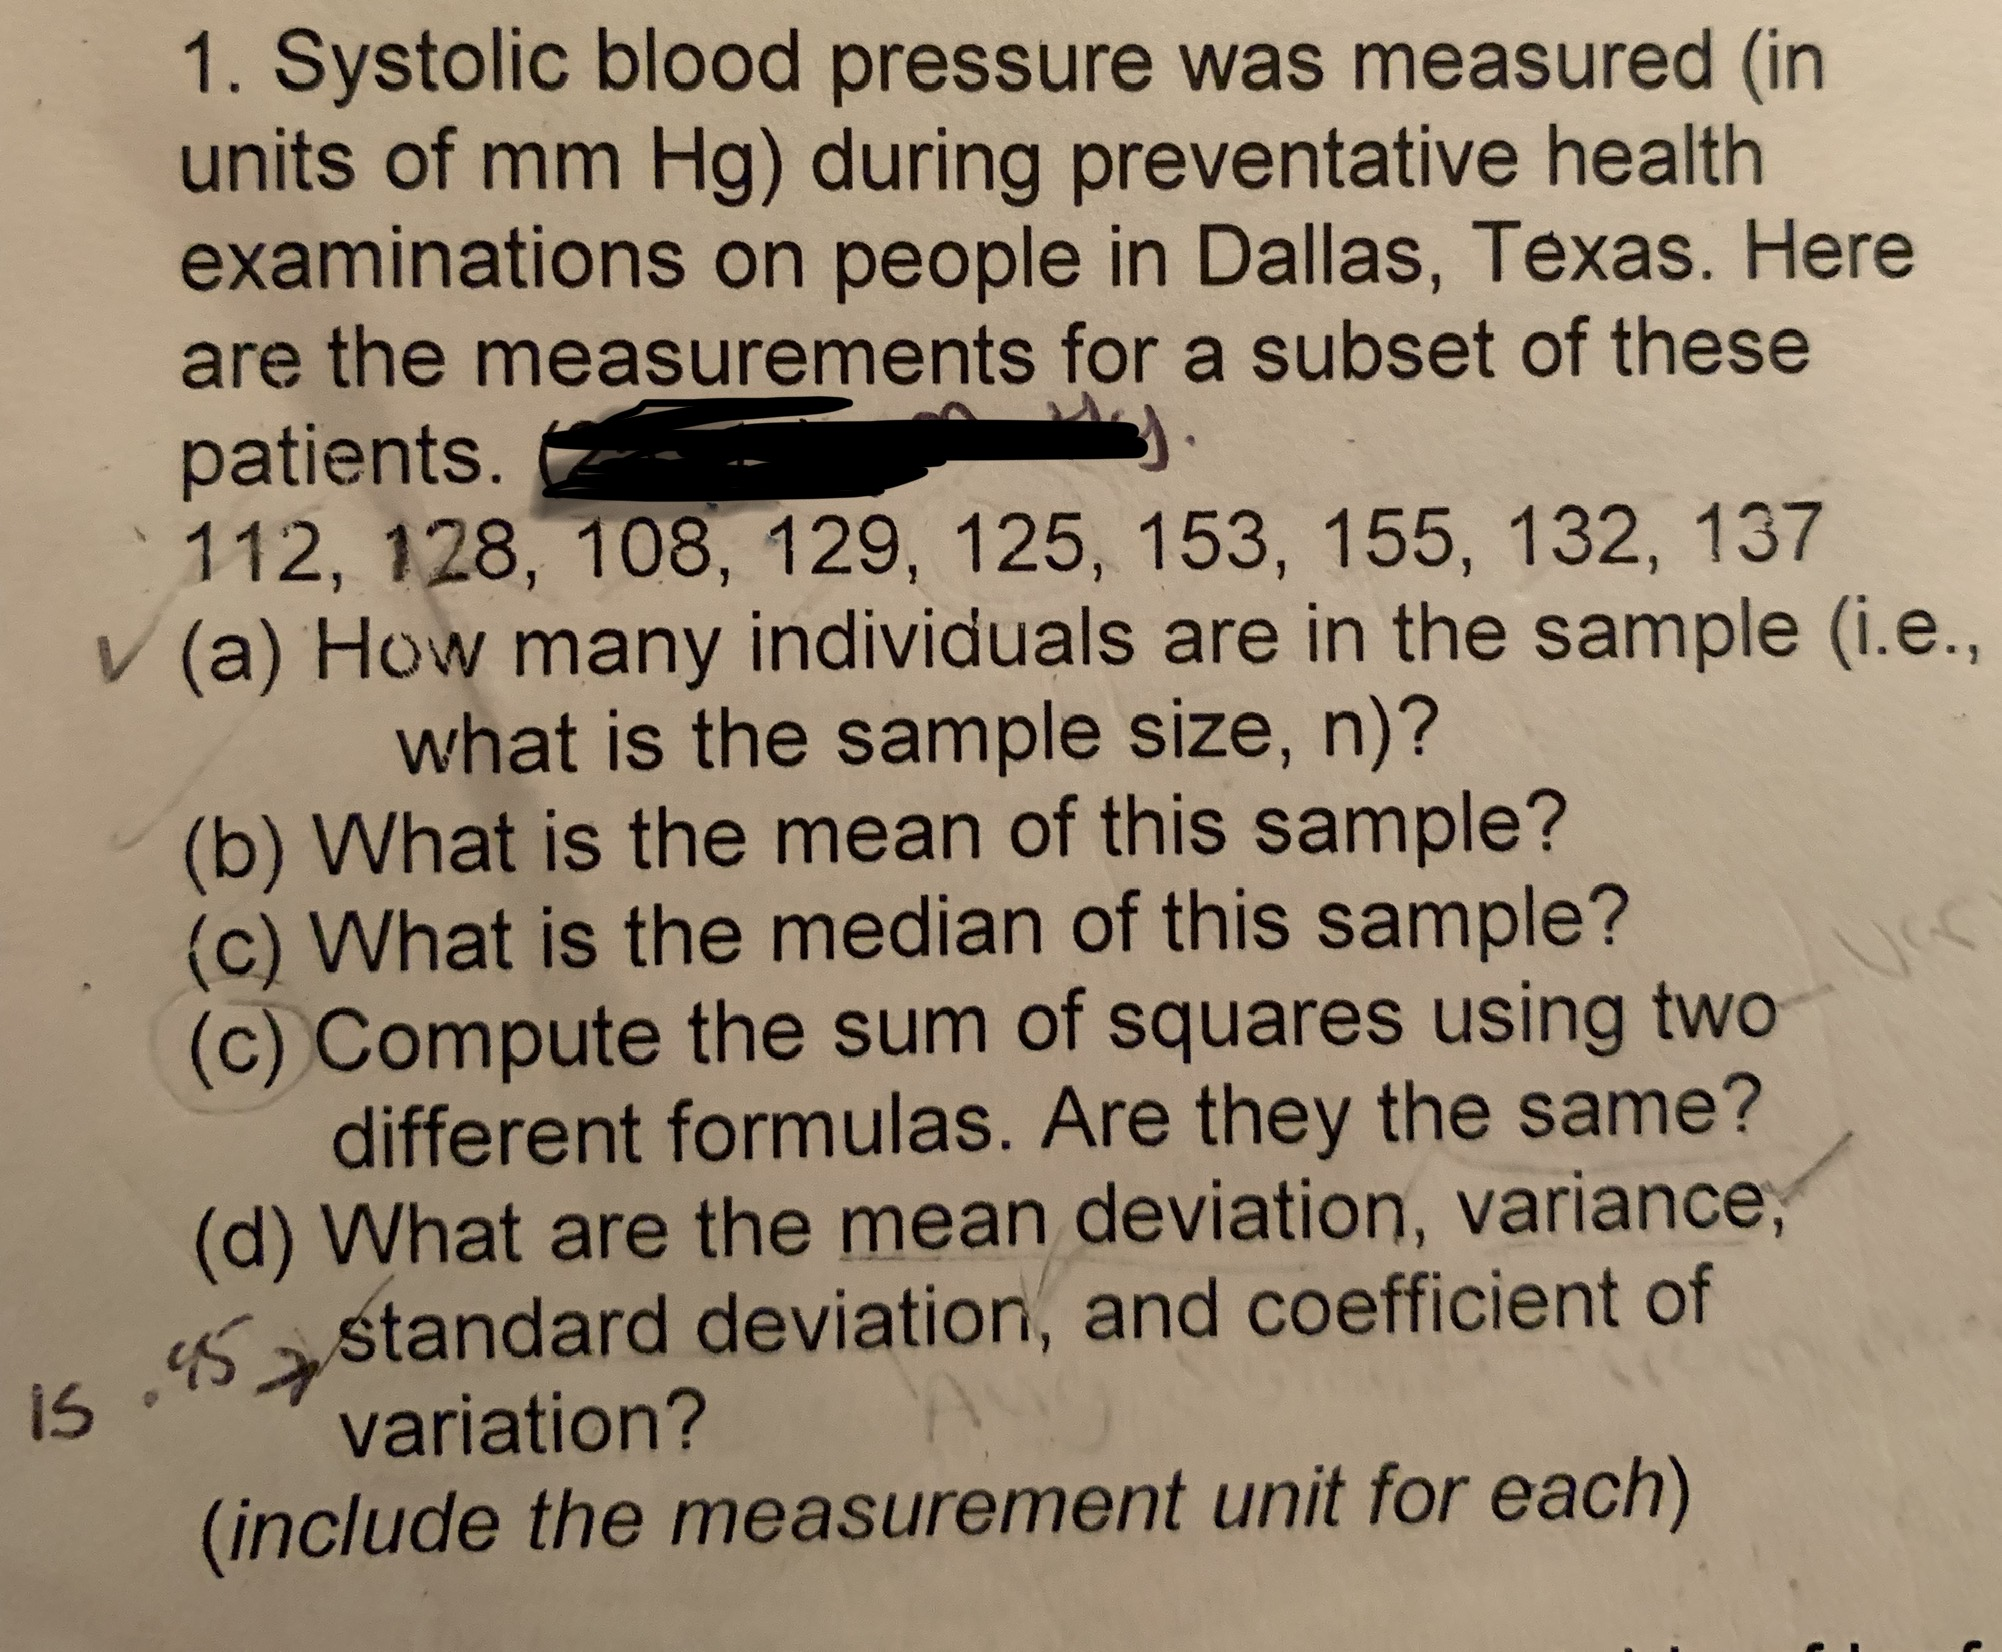 1. Systolic blood pressure was measured (in units of mm Hg) during preventative health examinations on people in Dallas, Texas. Here are the measurements for a subset of these patients. 112, 128, 108, 129, 125, 153, 155, 132, 137 V (a) How many individuals are in the sample (i.e., what is the sample size, n)? (b) What is the mean of this sample? (c) What is the median of this sample? (c) Compute the sum of squares using two different formulas. Are they the same? (d) What are the mean deviation, variance, s astandard deviation, and coefficient of variation? (include the measurement unit for each)